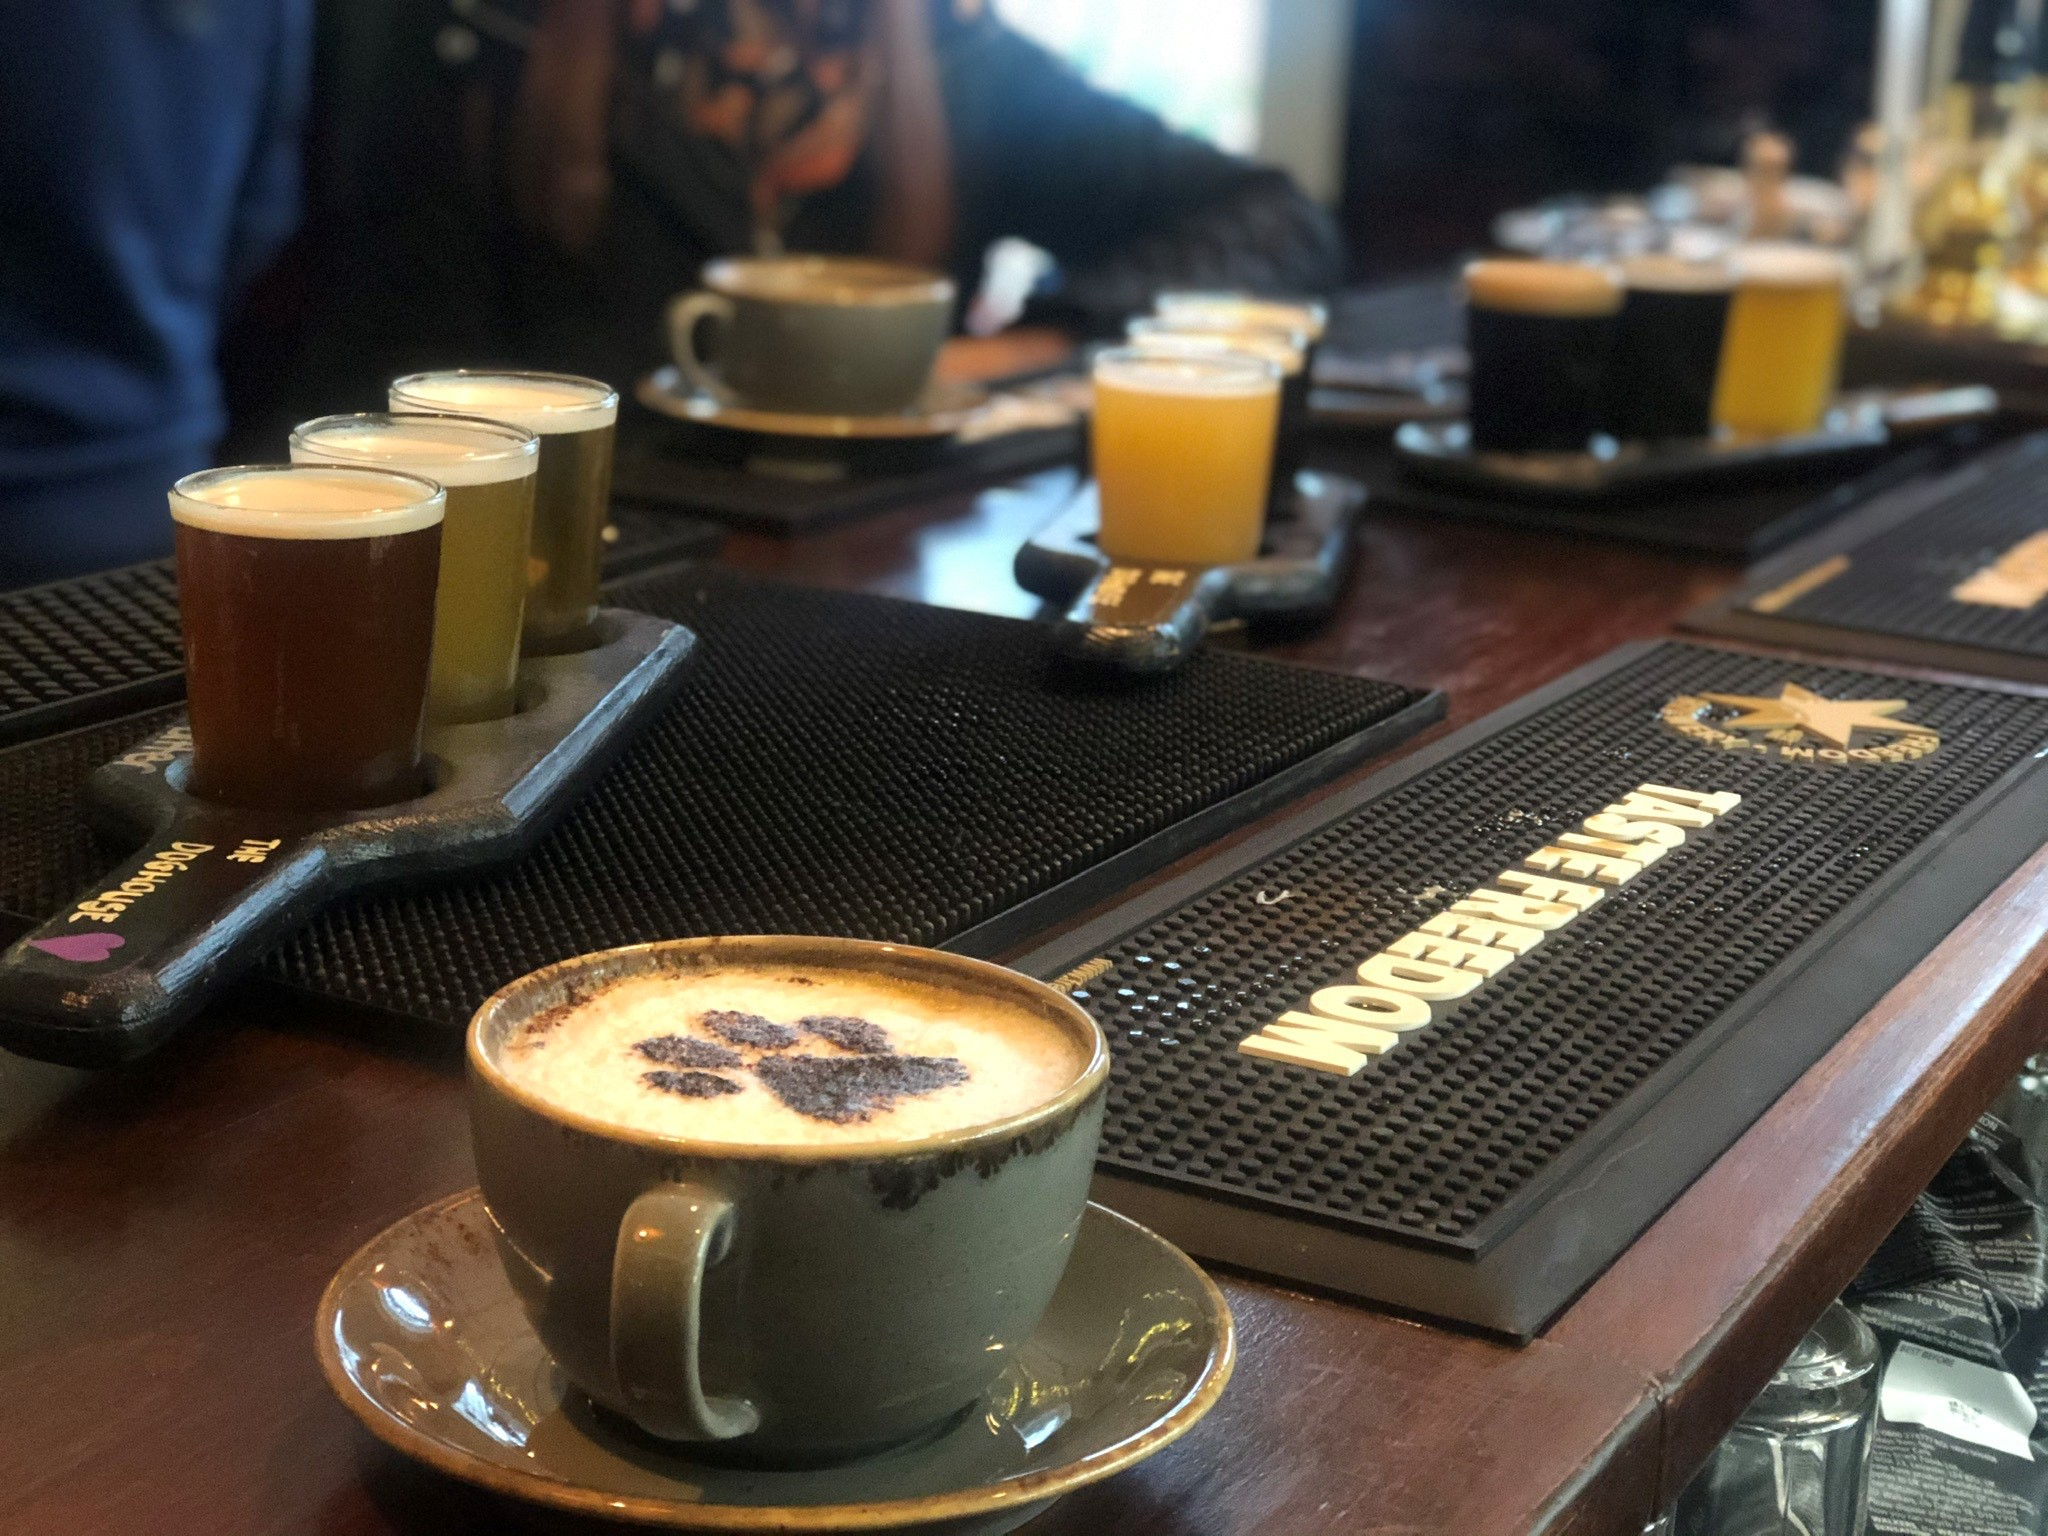 Coffee and glasses of beer on the bar at The Doghouse Selby